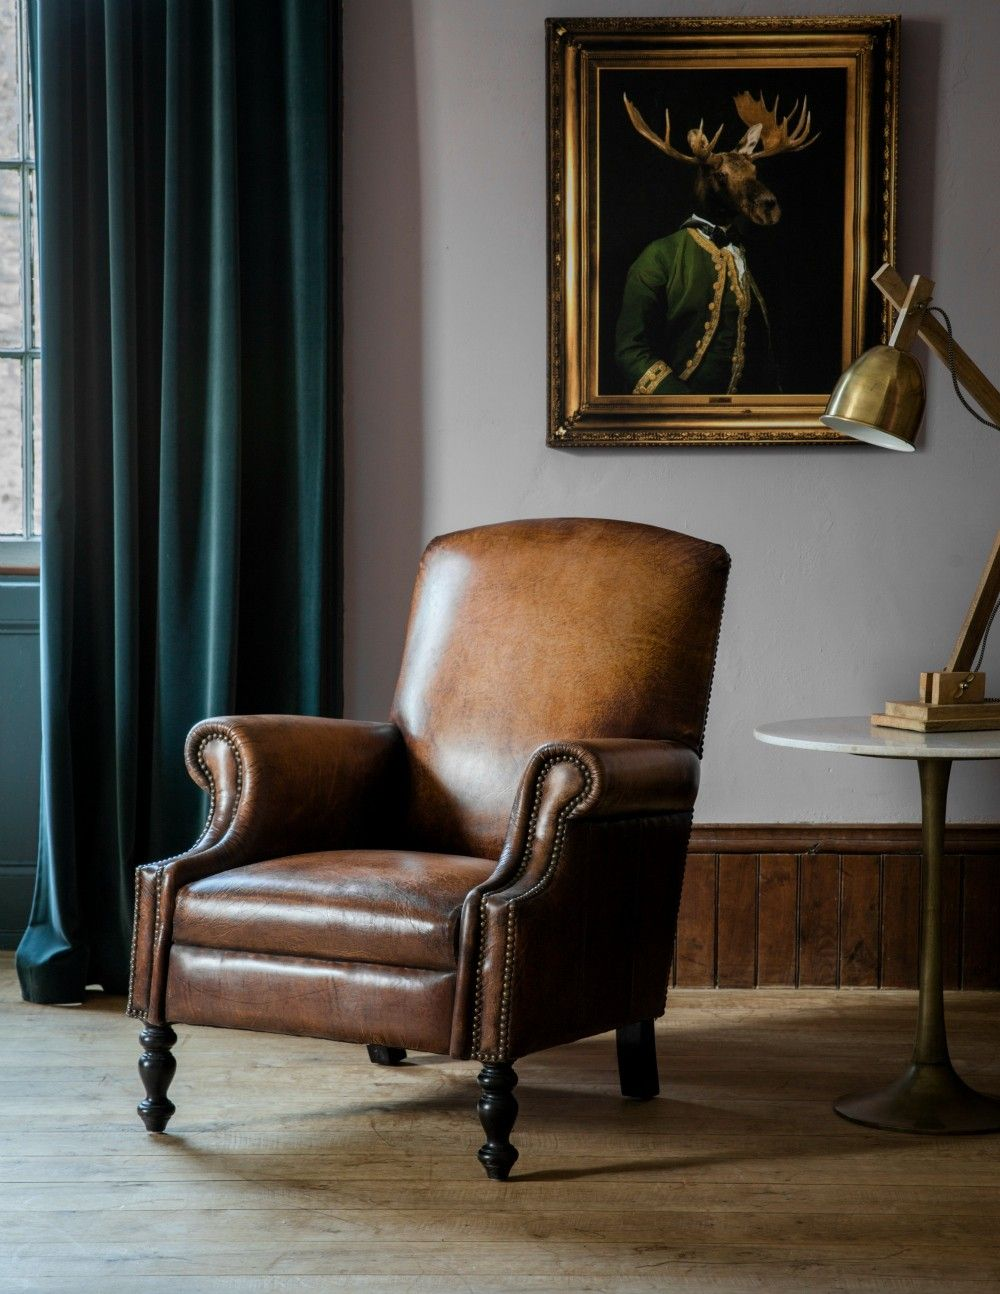 Crazy About The Moose Picture In The Background Distressed Leather Gentlemen S Armchair Leather Chair Living Room Vintage Leather Sofa Furniture